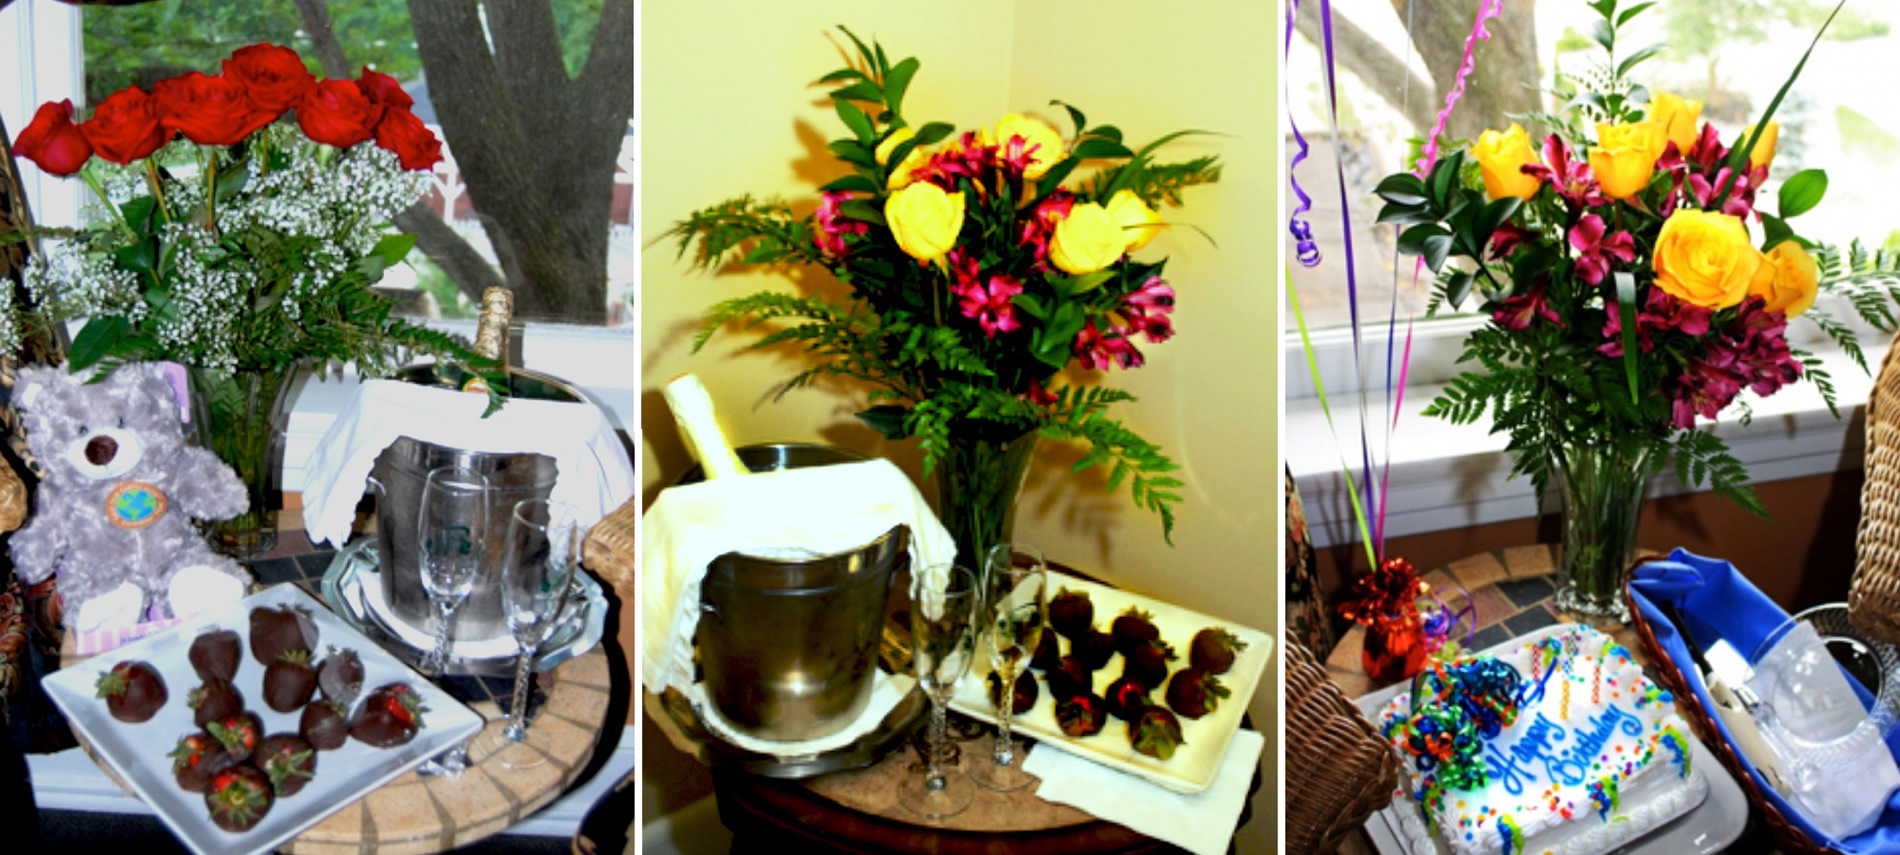 Montage showing three different add-on packages, including flower arrangements, chocolate covered strawberries, chilled champagne and a birthday cake